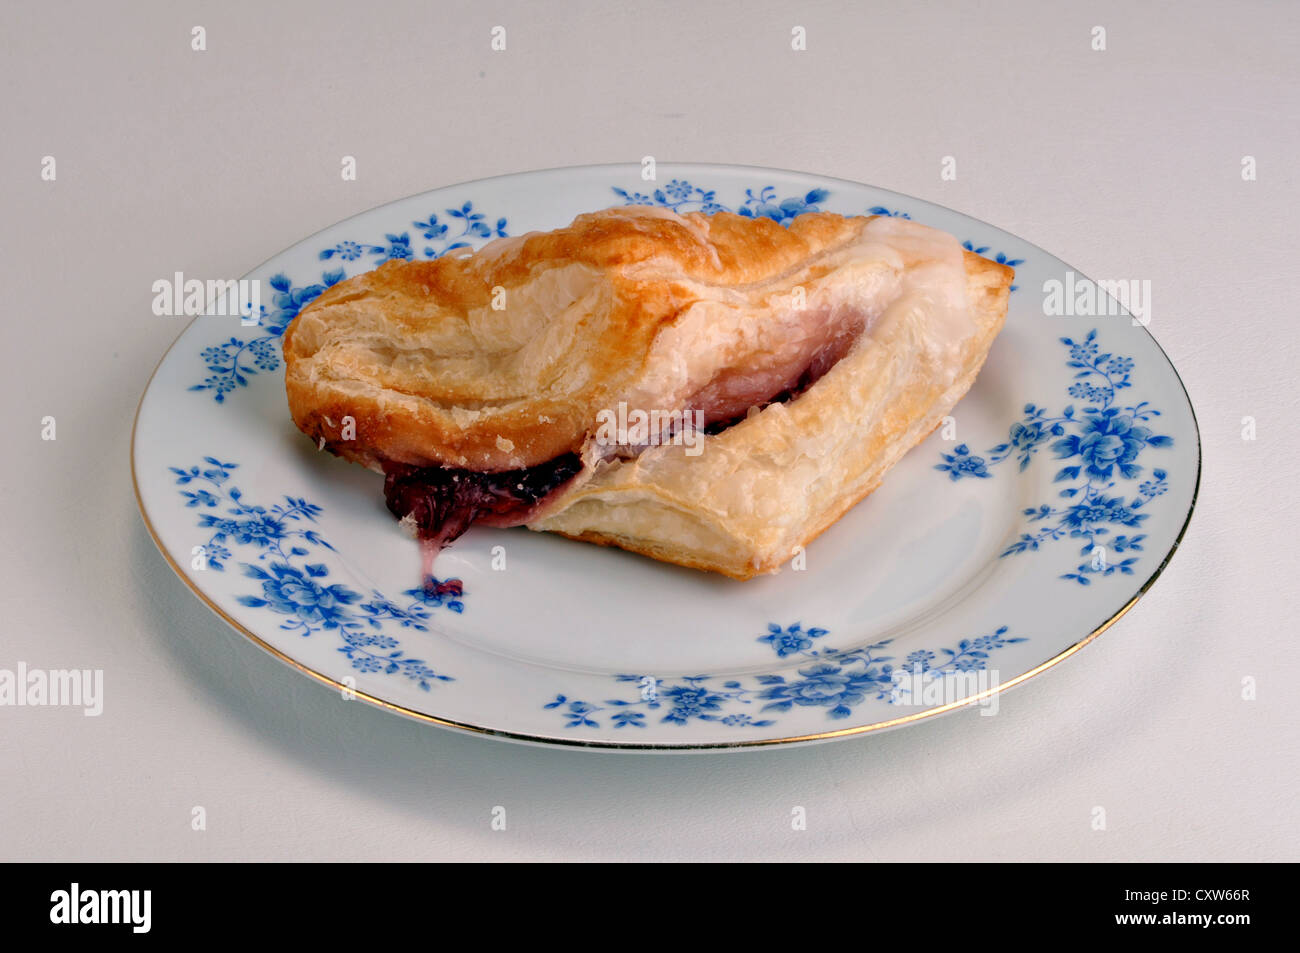 Cherry turnover on a saucer on a white background. - Stock Image